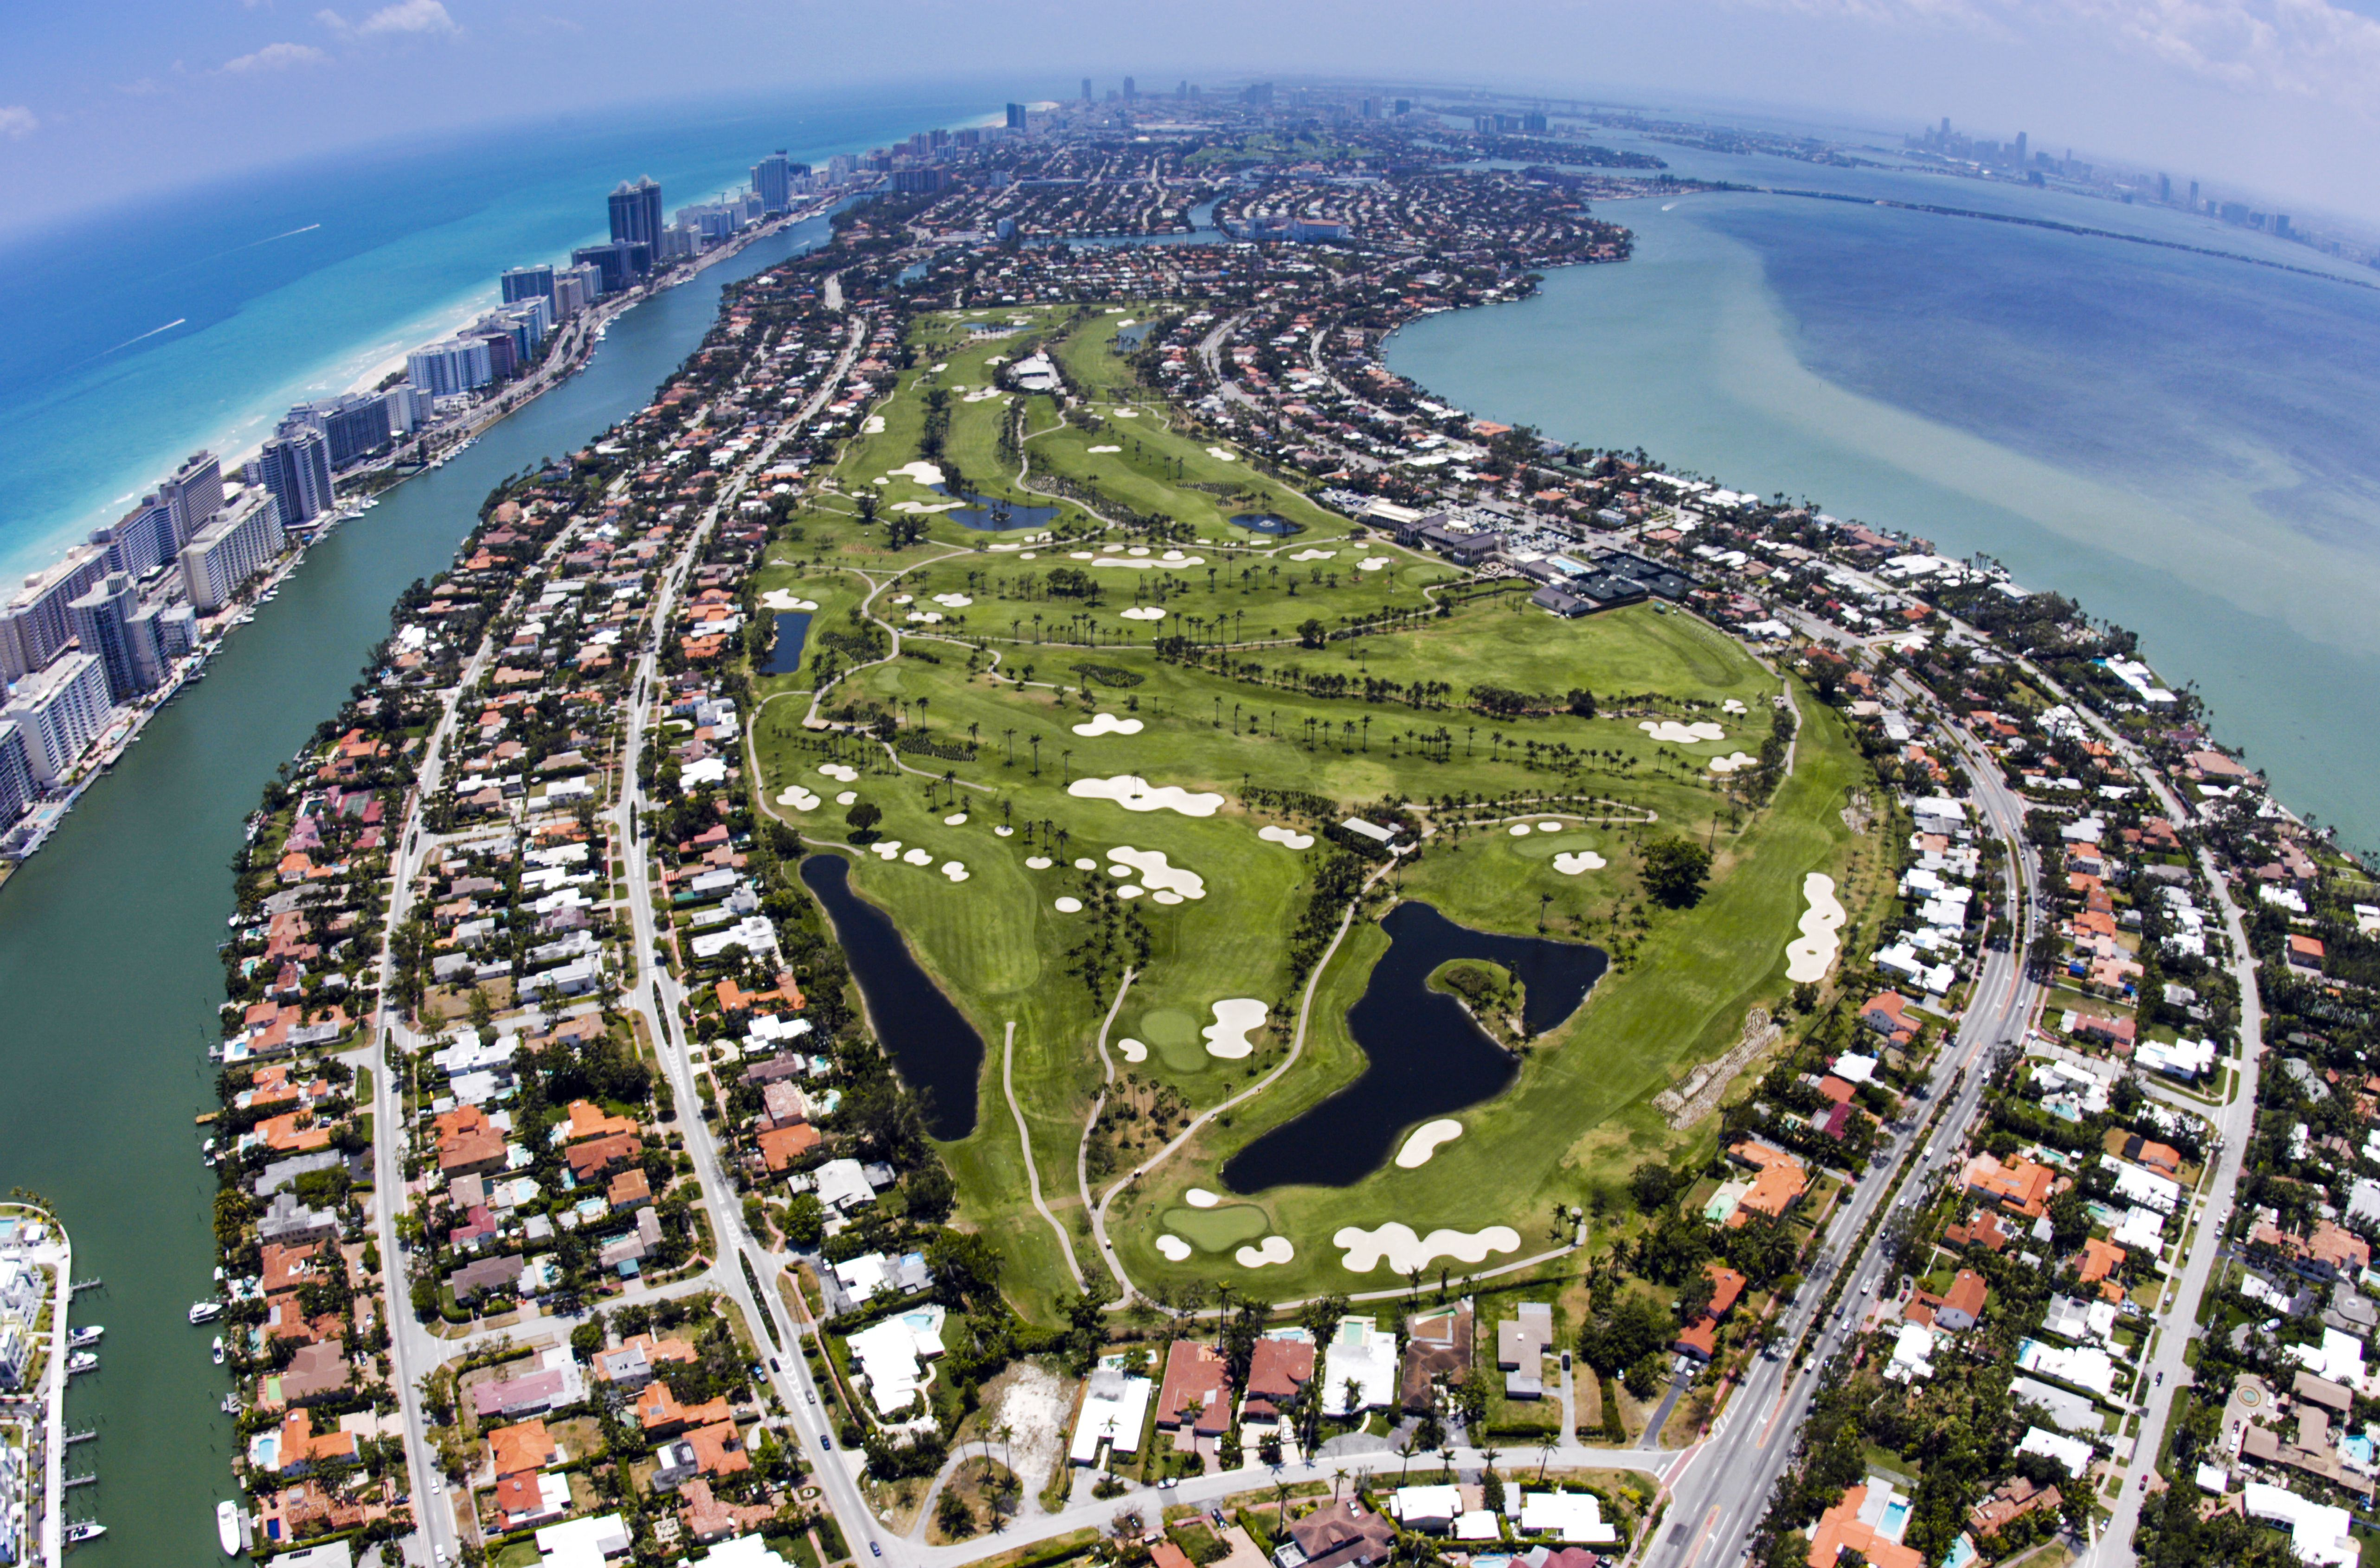 An aerial view of La Gorce Country Club in Miami Beach, Florida